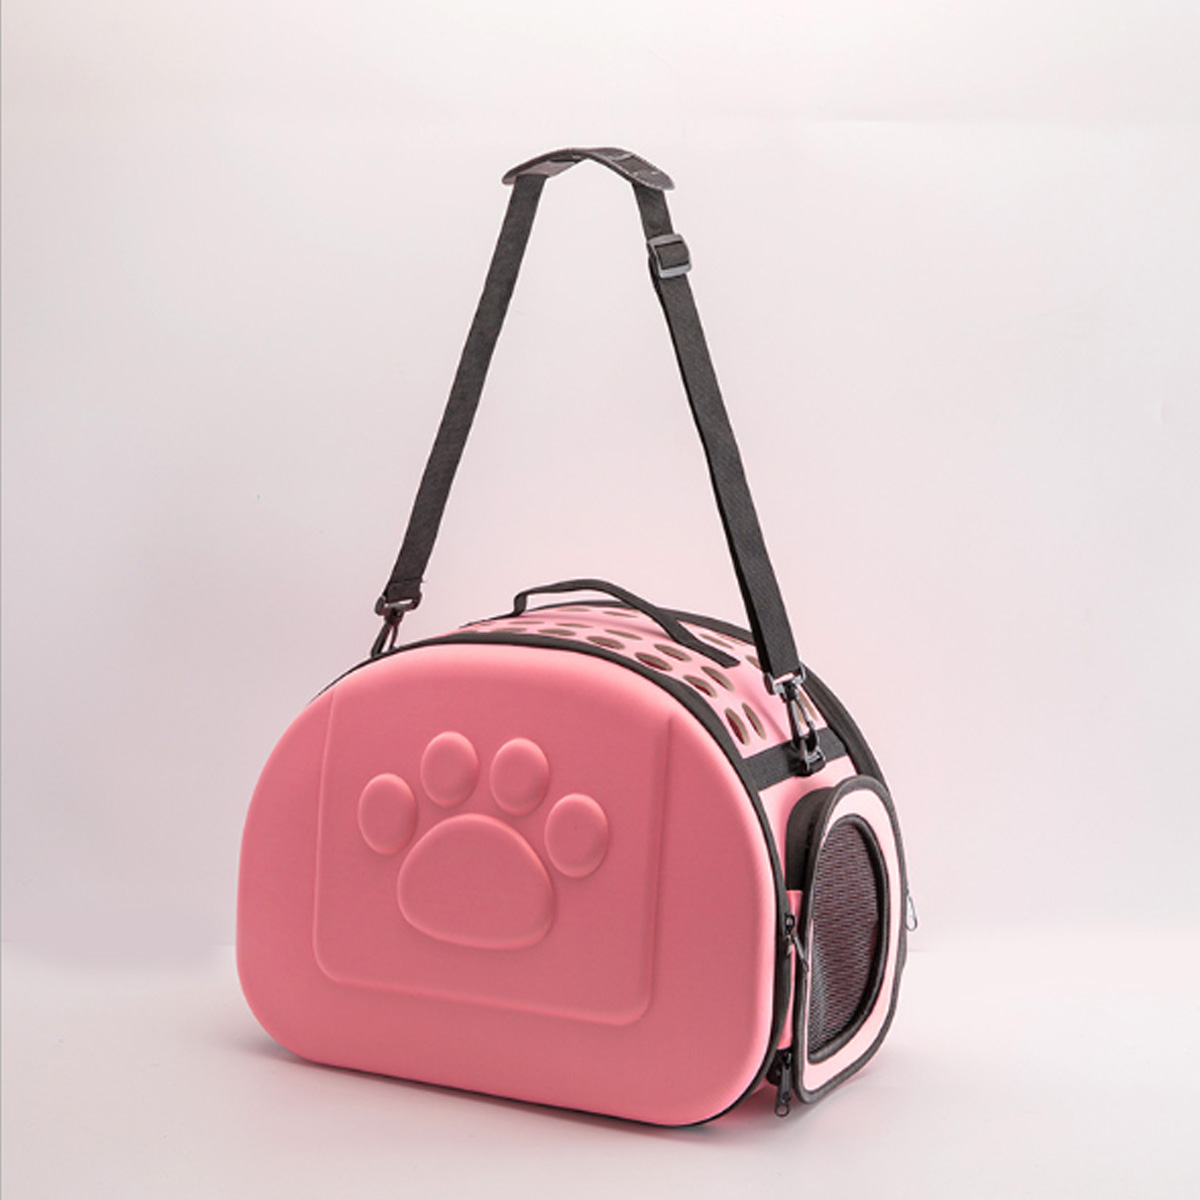 Portable Pet Dog Cat Puppy Handbag Portable Travel Carry Carrier Tote Cage Bag Crate Box Holder